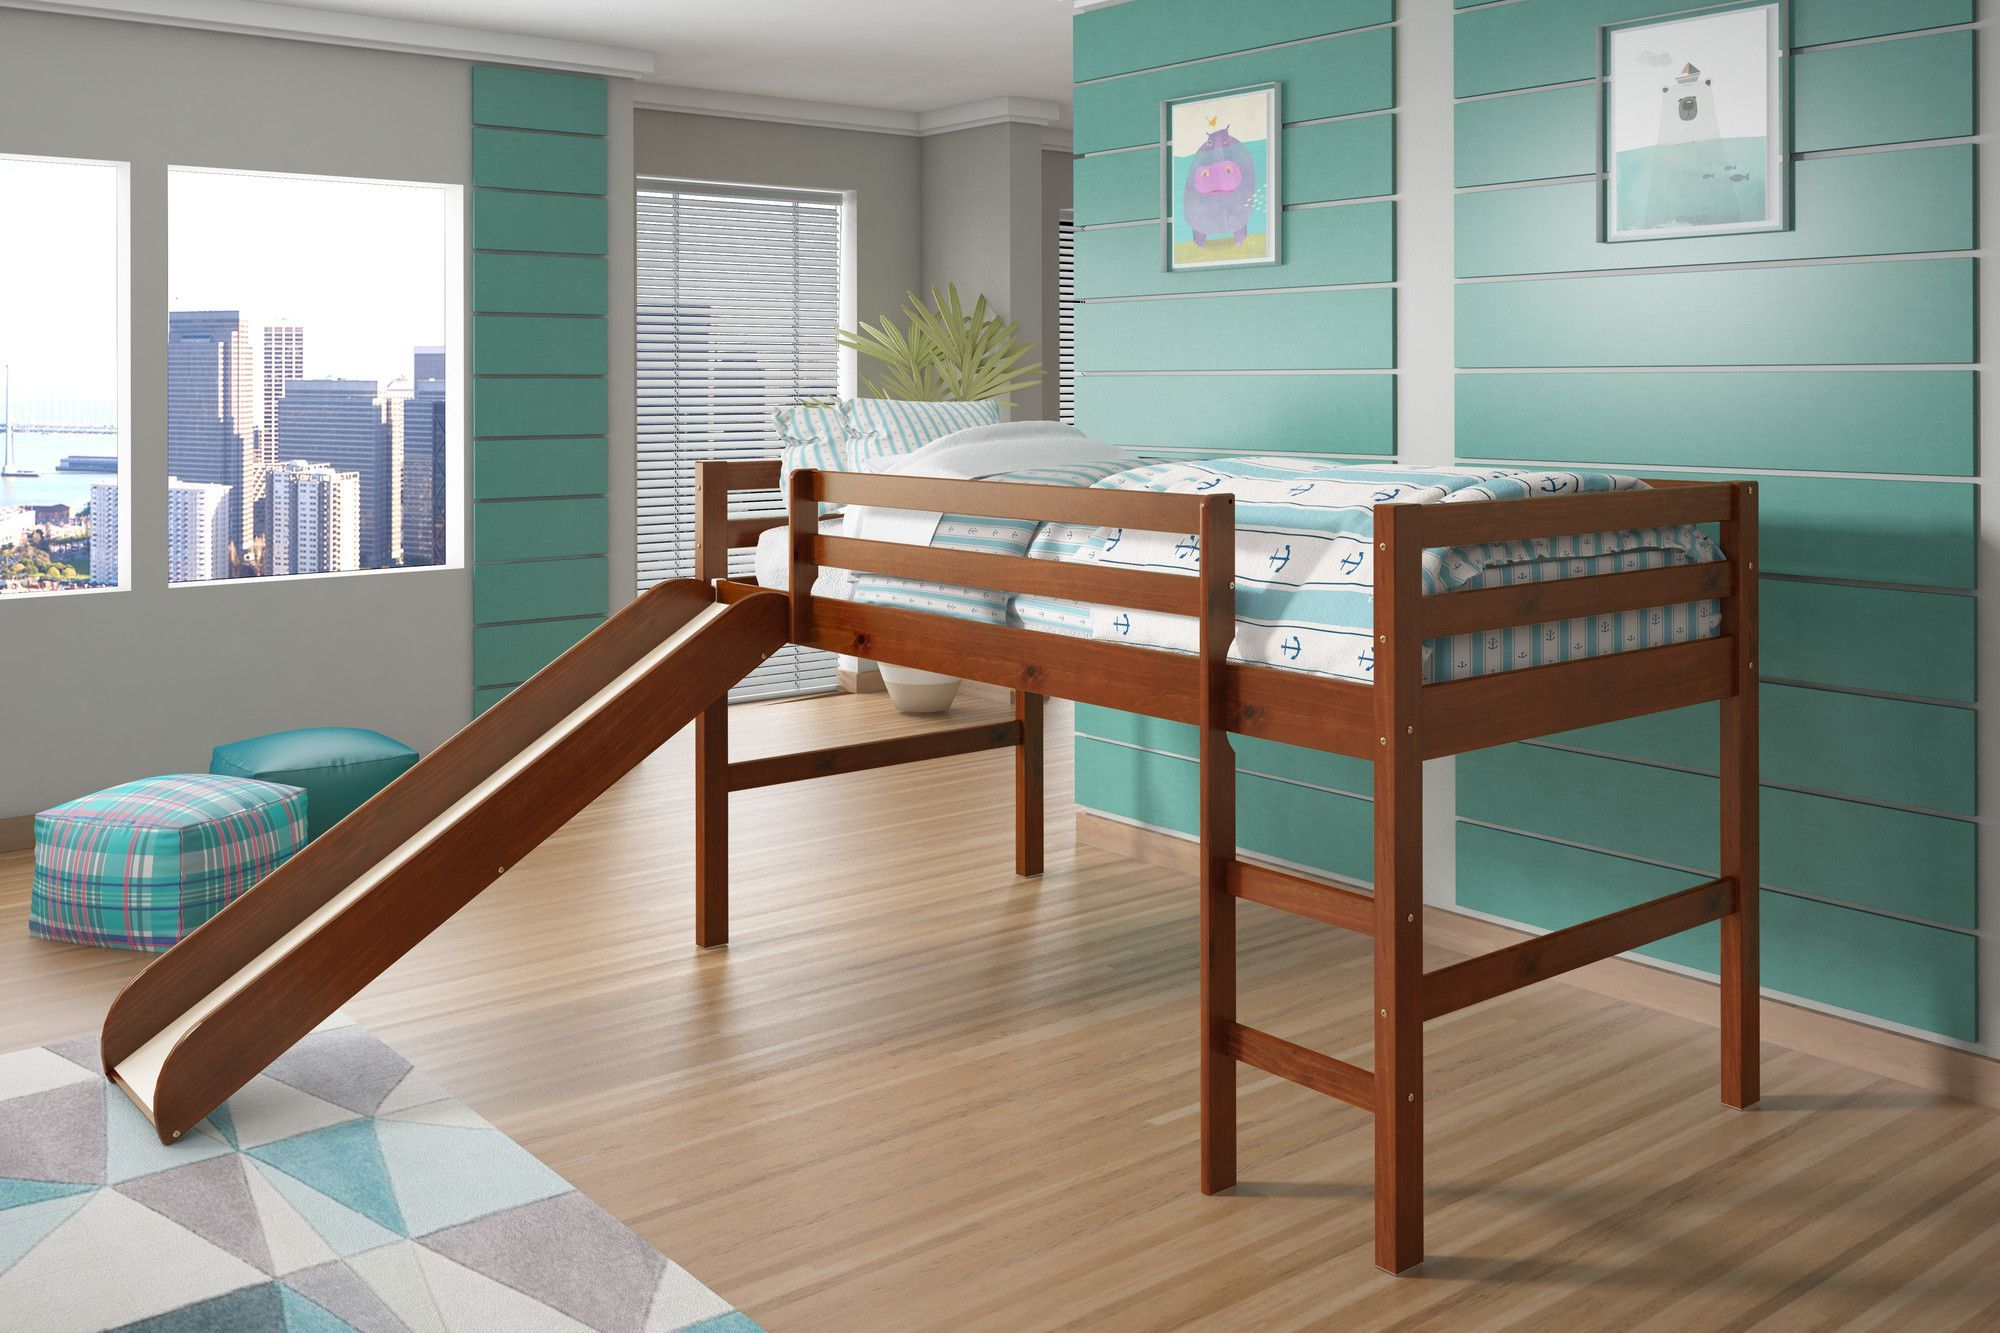 Kids low loft bed  Twin Low Loft Bed  Products  Pinterest  Low loft beds and Products